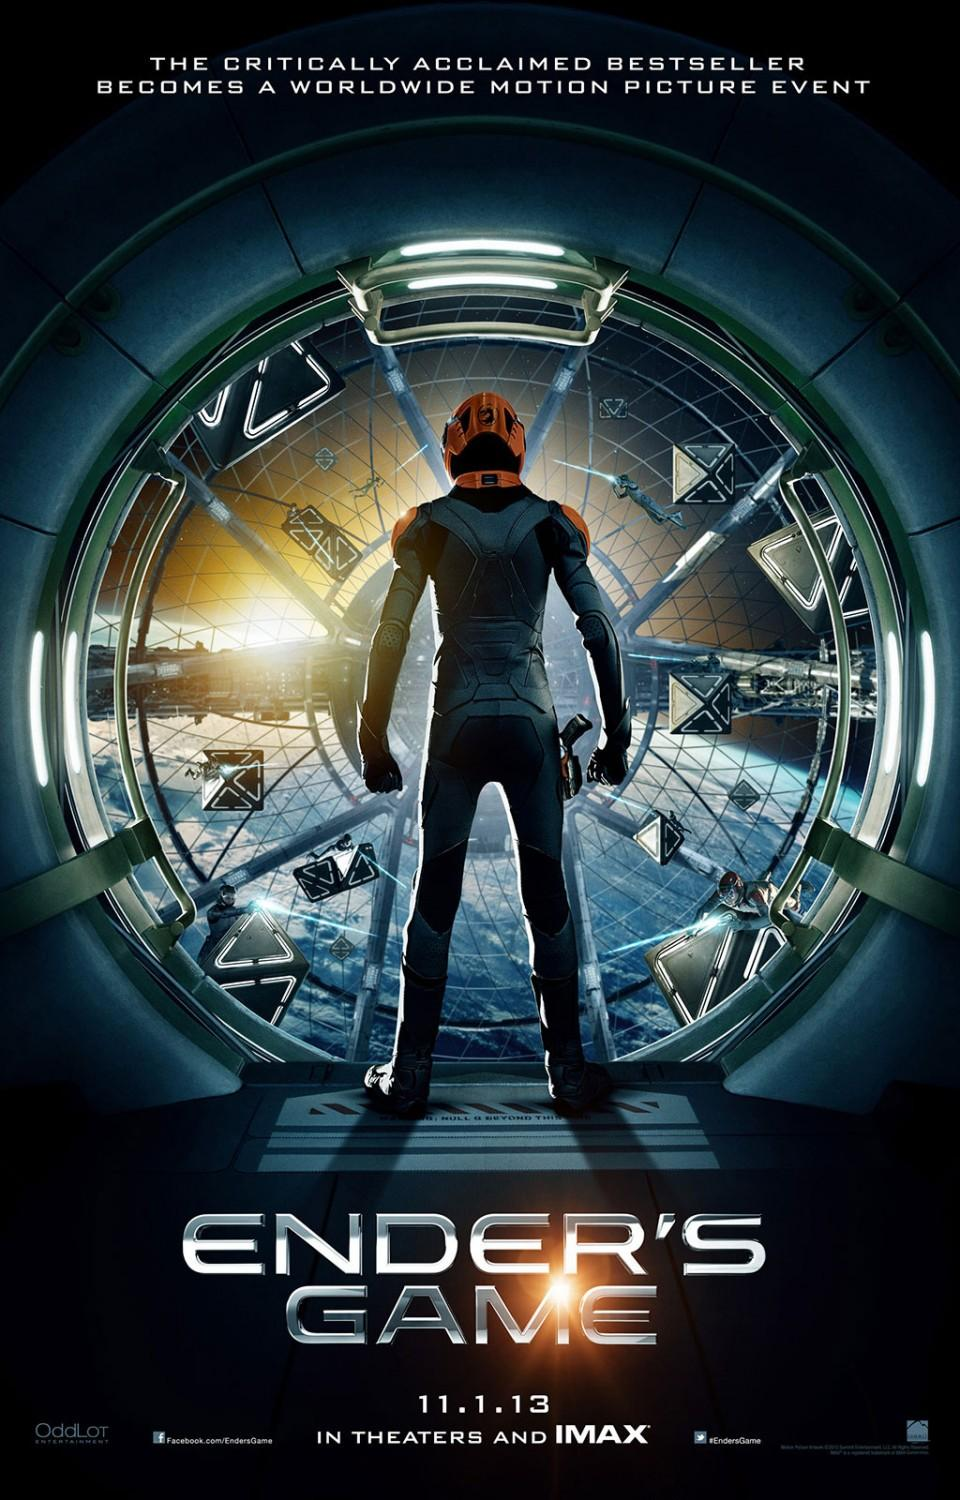 enders game full movie with english subtitles